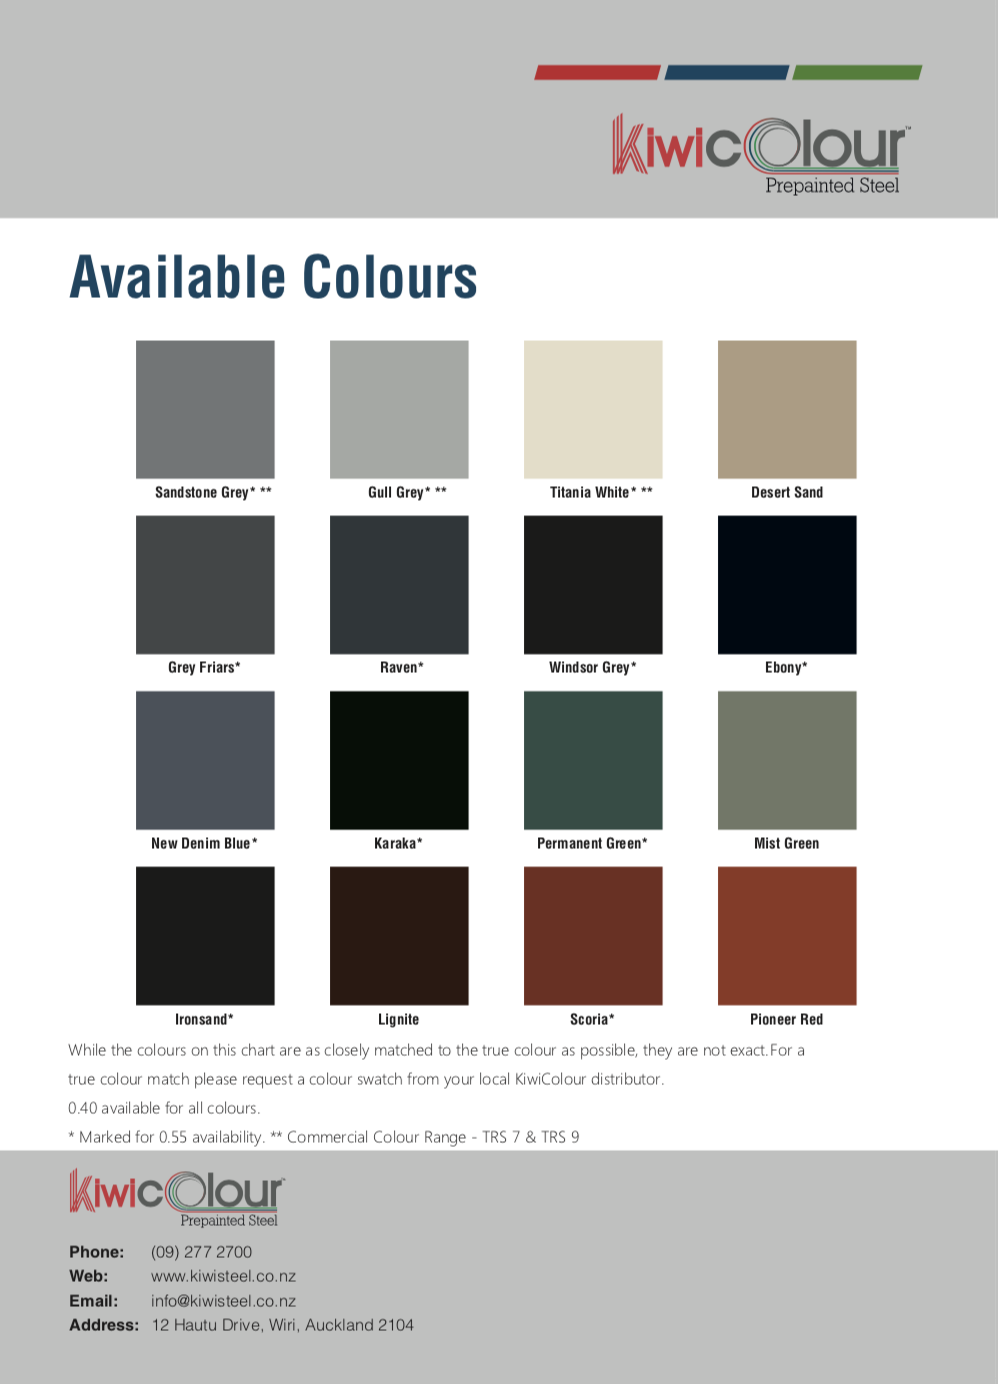 KiwiColour Pre-Painted Steel Available Colours Image.png